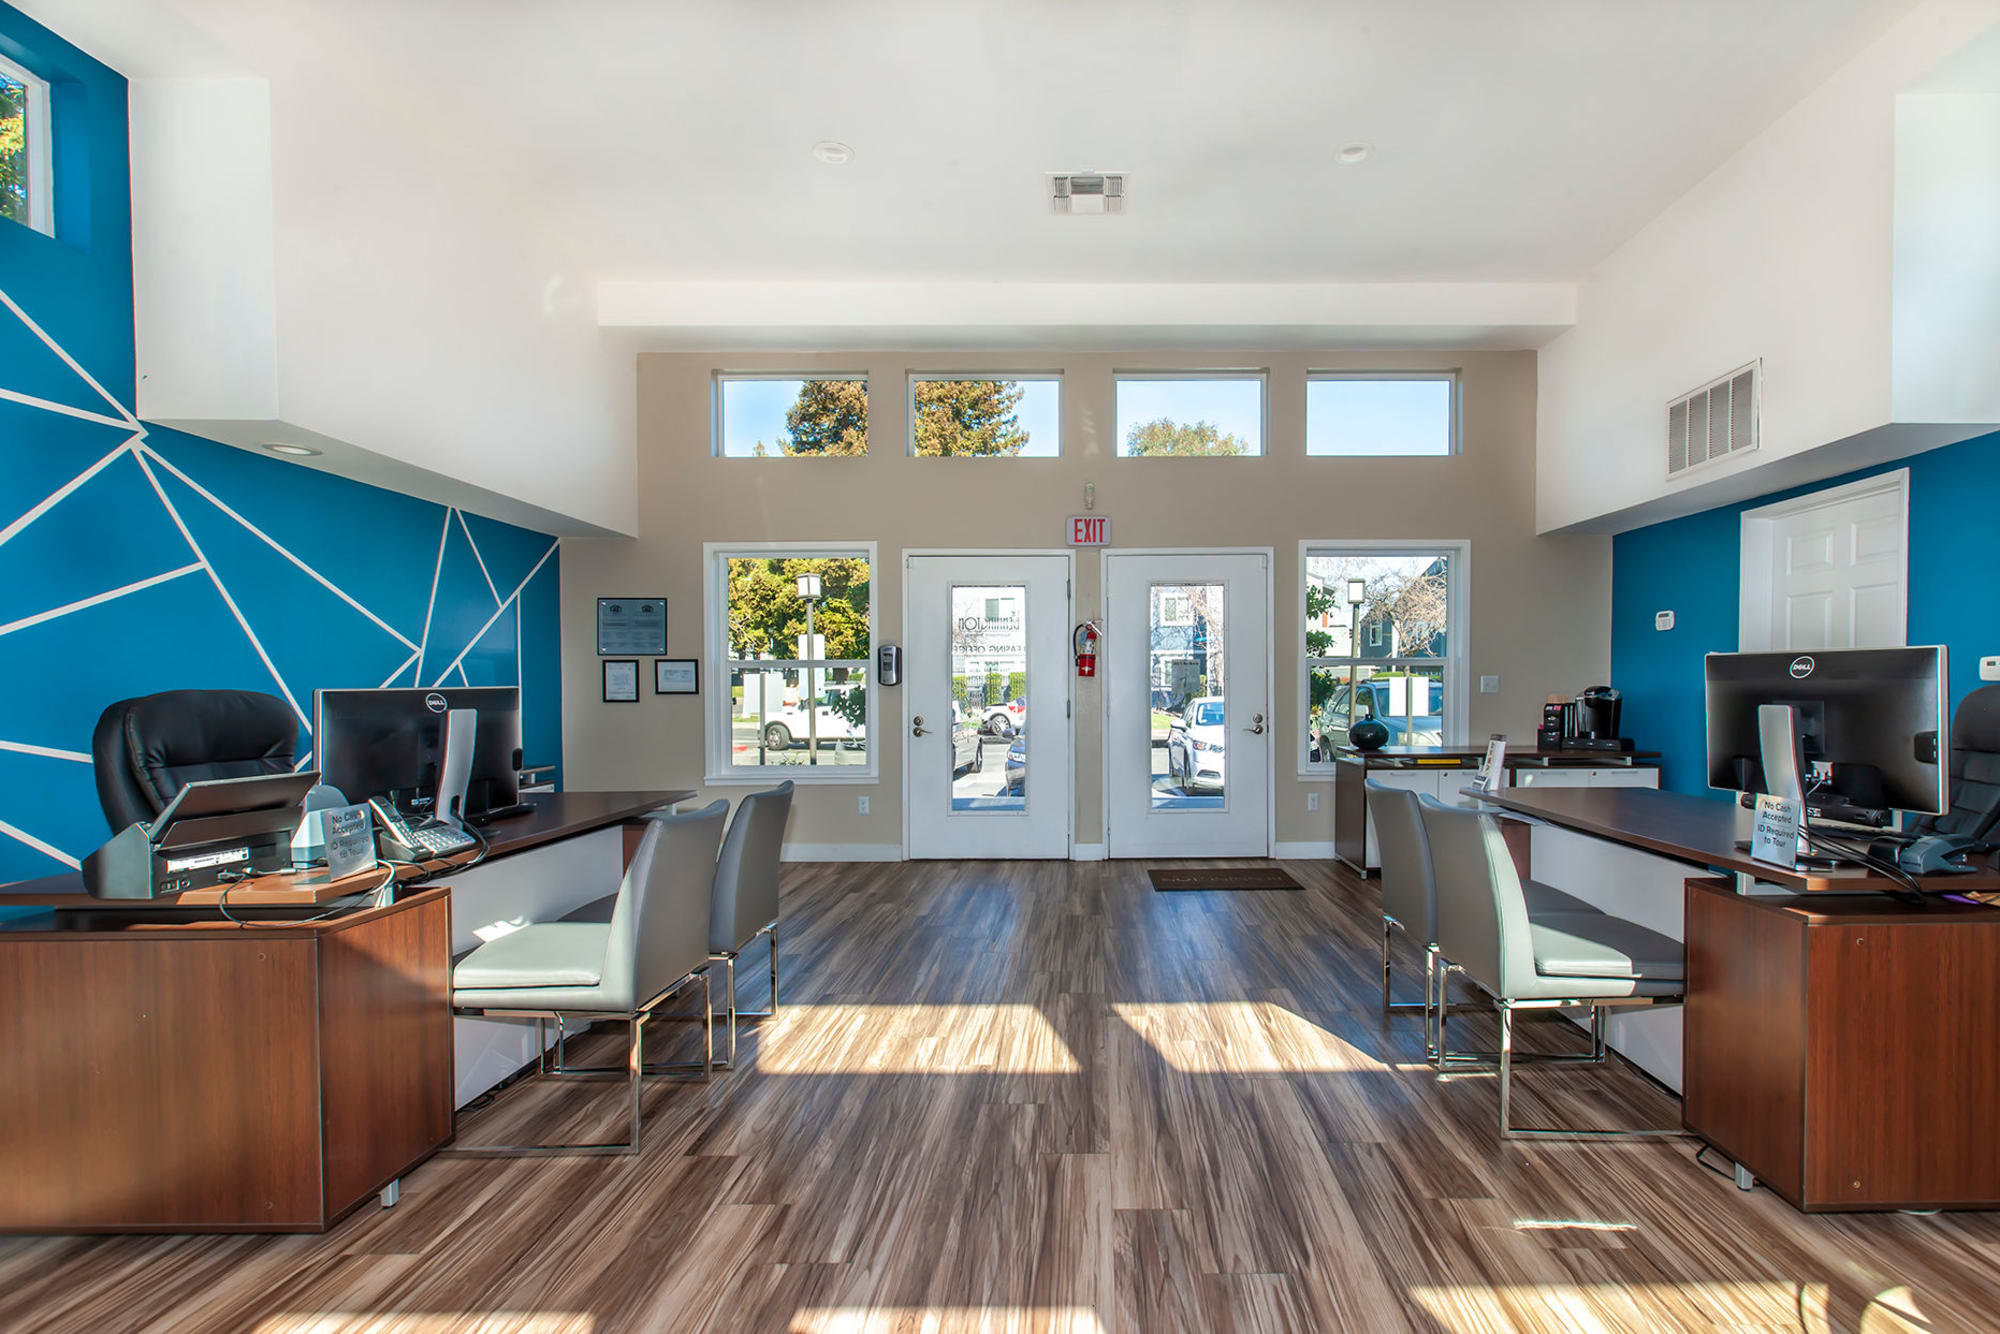 The sunny interior of the leasing office at Bennington Apartments in Fairfield, California